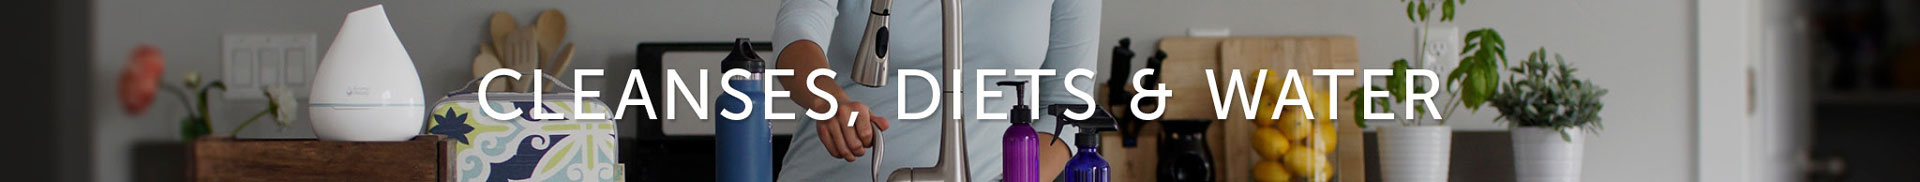 Cleanses, Diets & Water